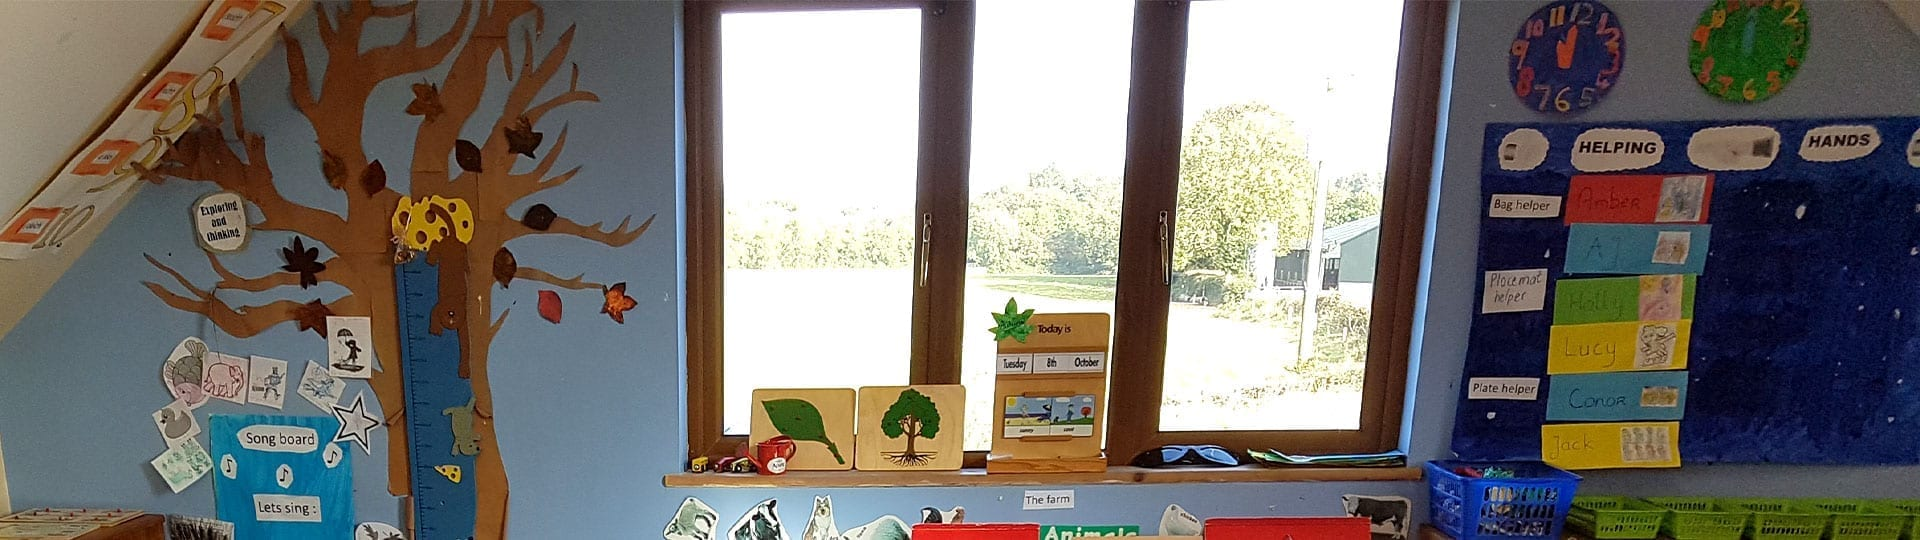 childcare learning room Mellowes playschool creche meath and westmeath